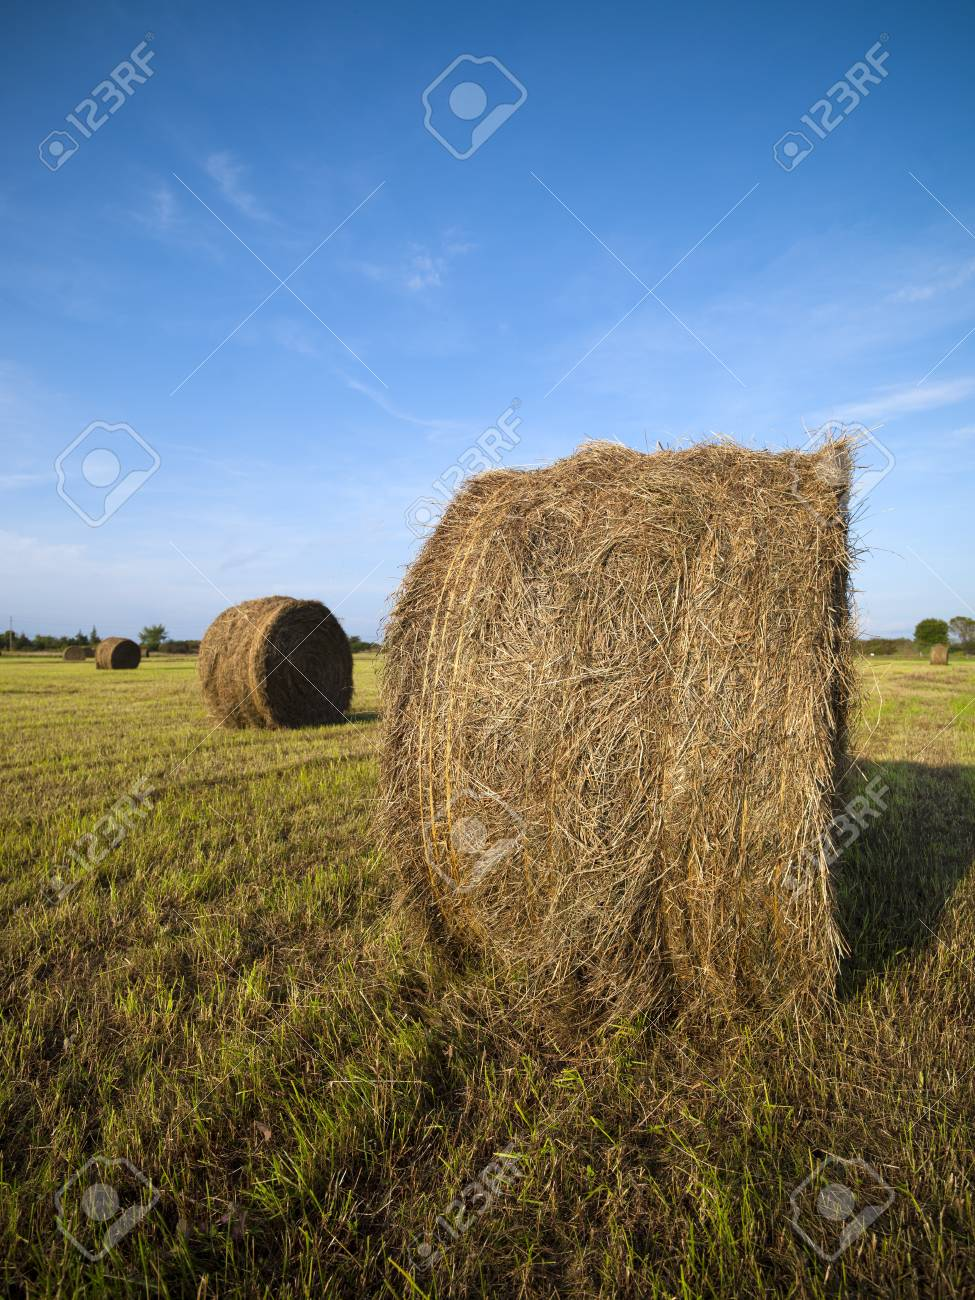 View of a hay bale in field with sky in the background. Stock Photo - 16978300